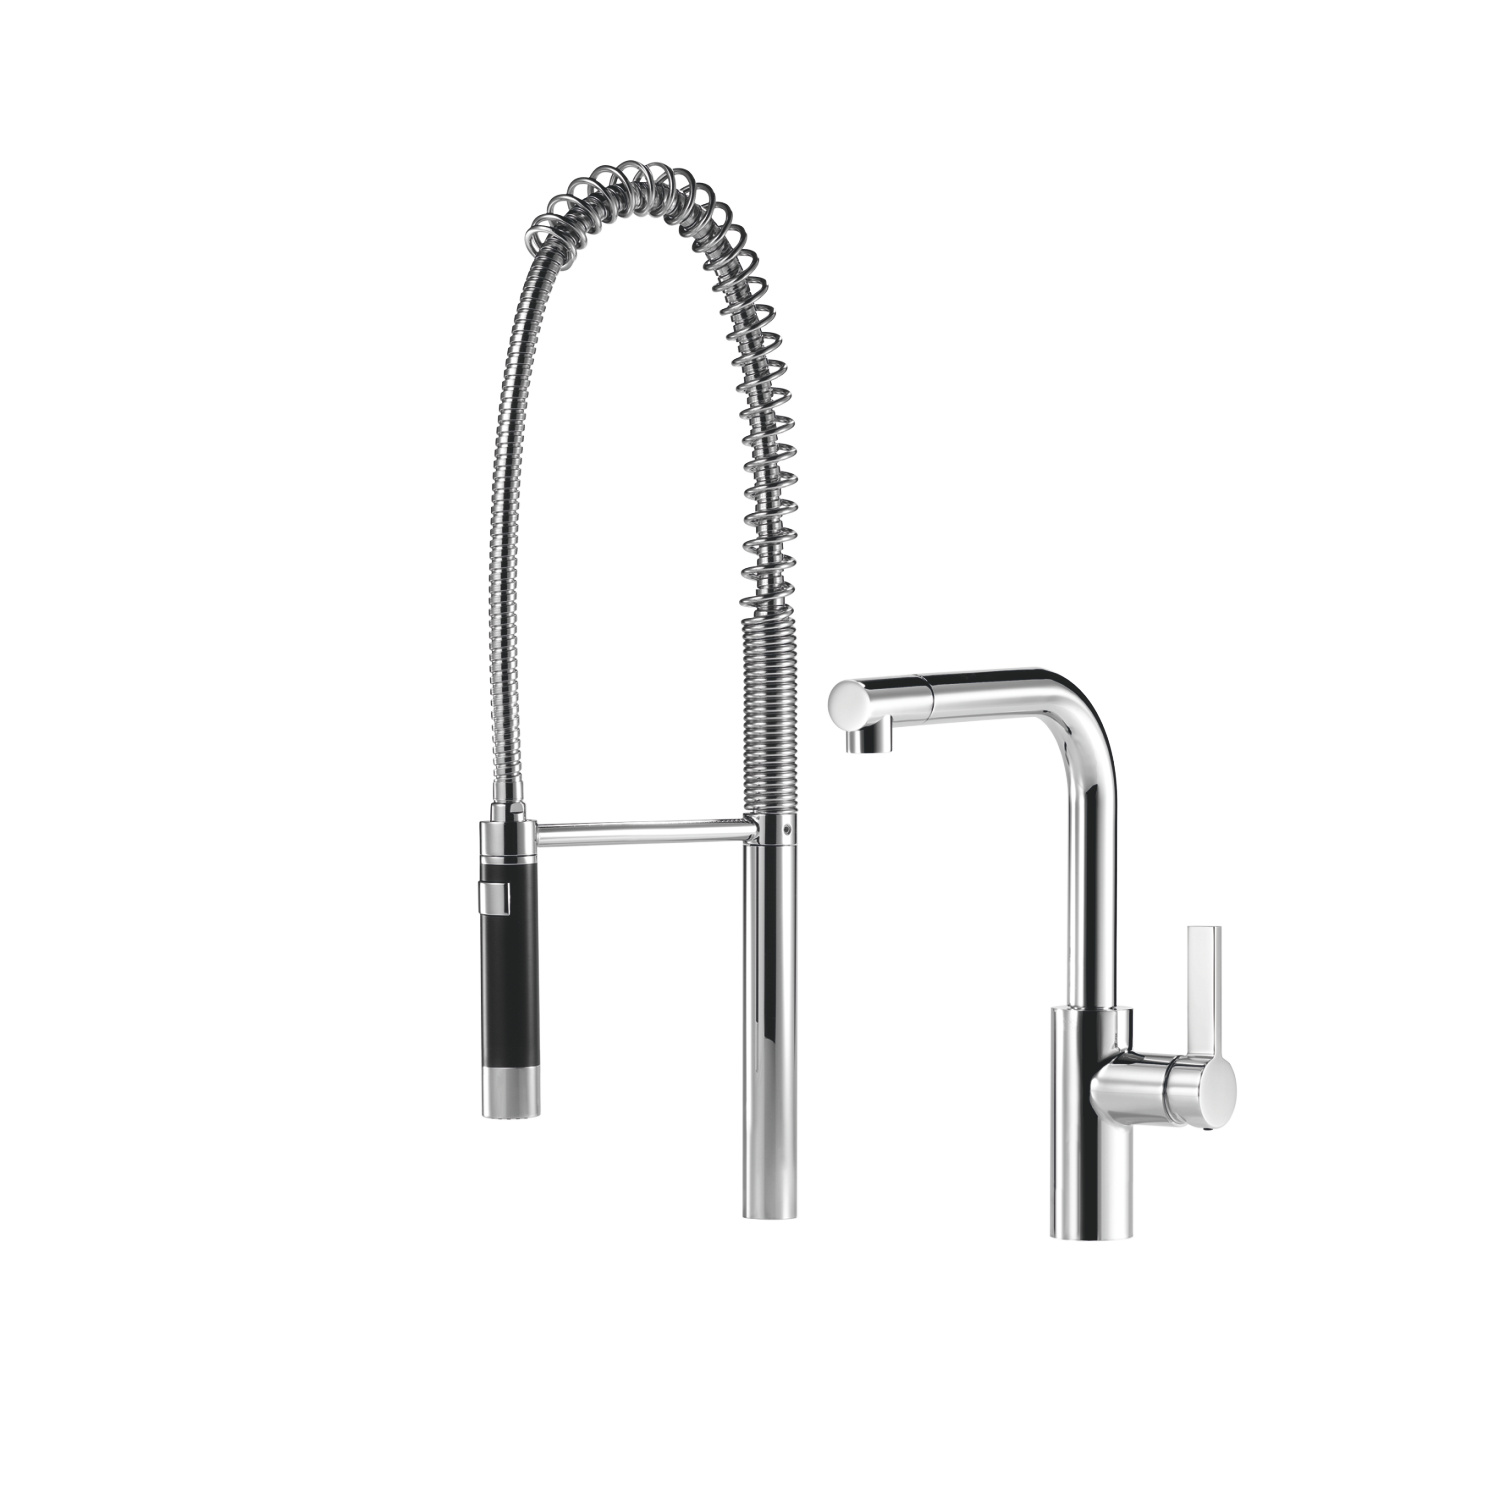 Single-lever mixer with profi spray set - polished chrome